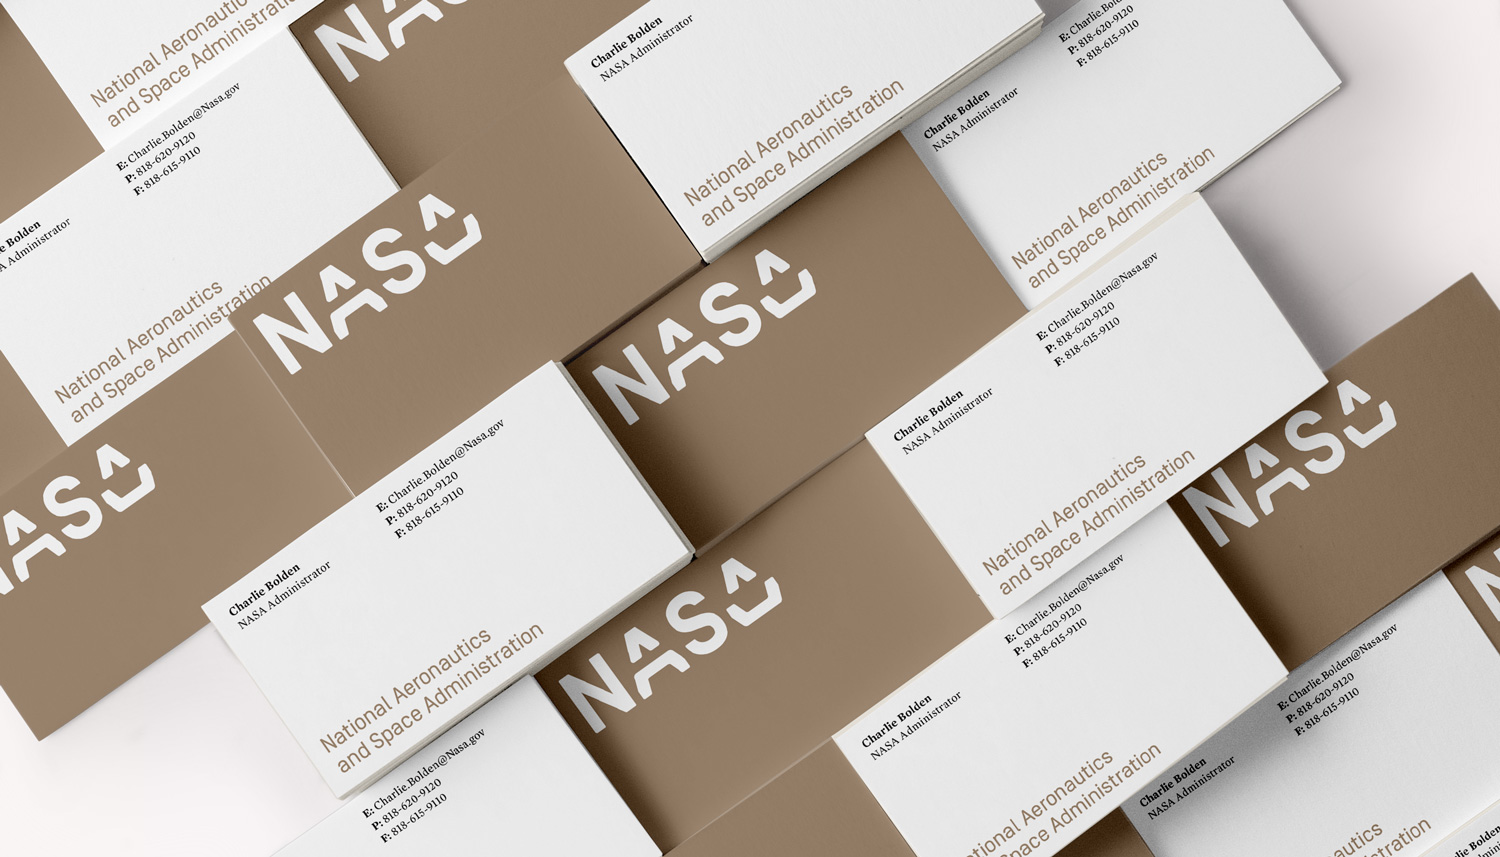 Toi nasa business card mockup vol 29 nasa stationery colourmoves